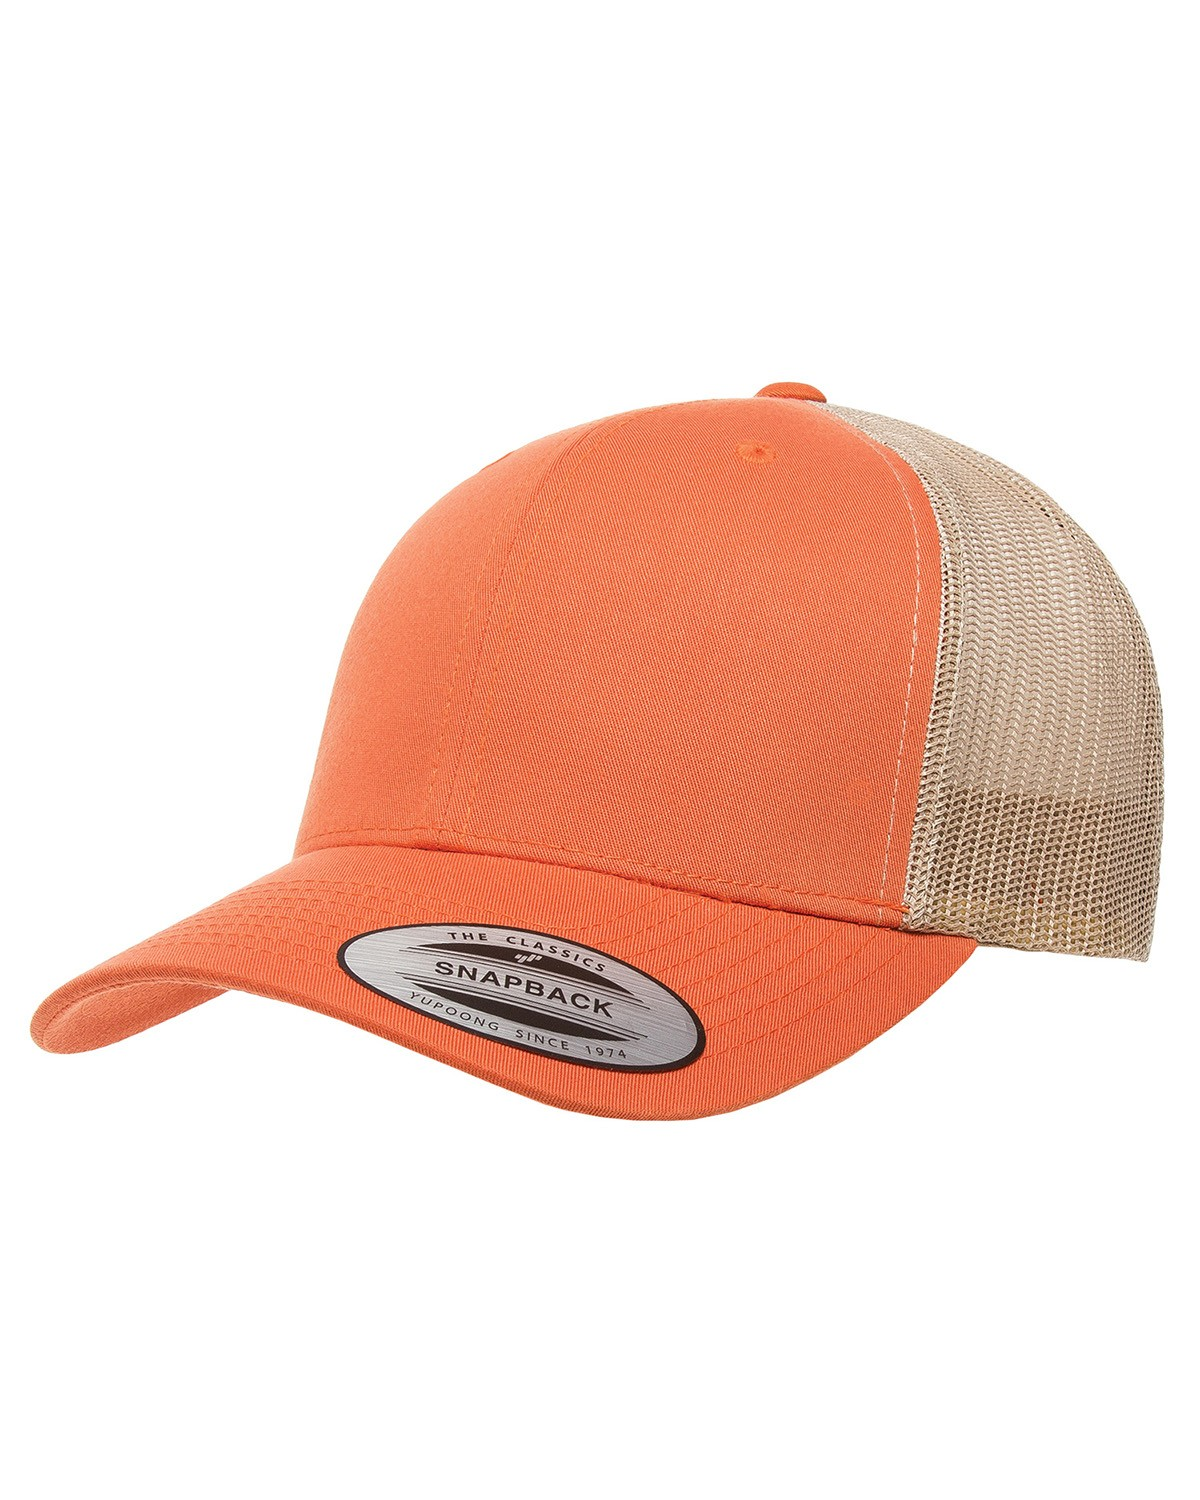 6606 Yupoong RUST ORANGE/KHAKI